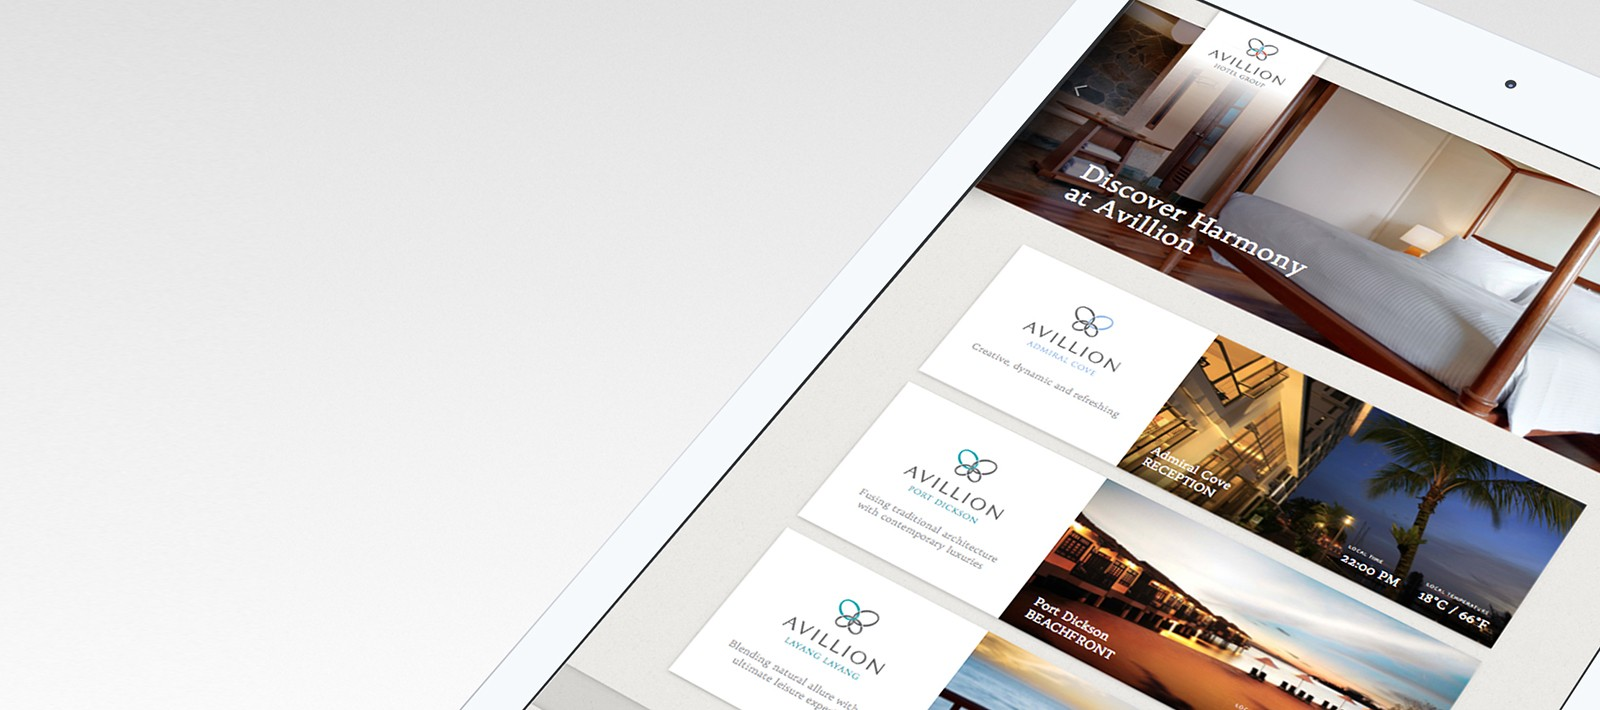 Avillion hospitality user interface design